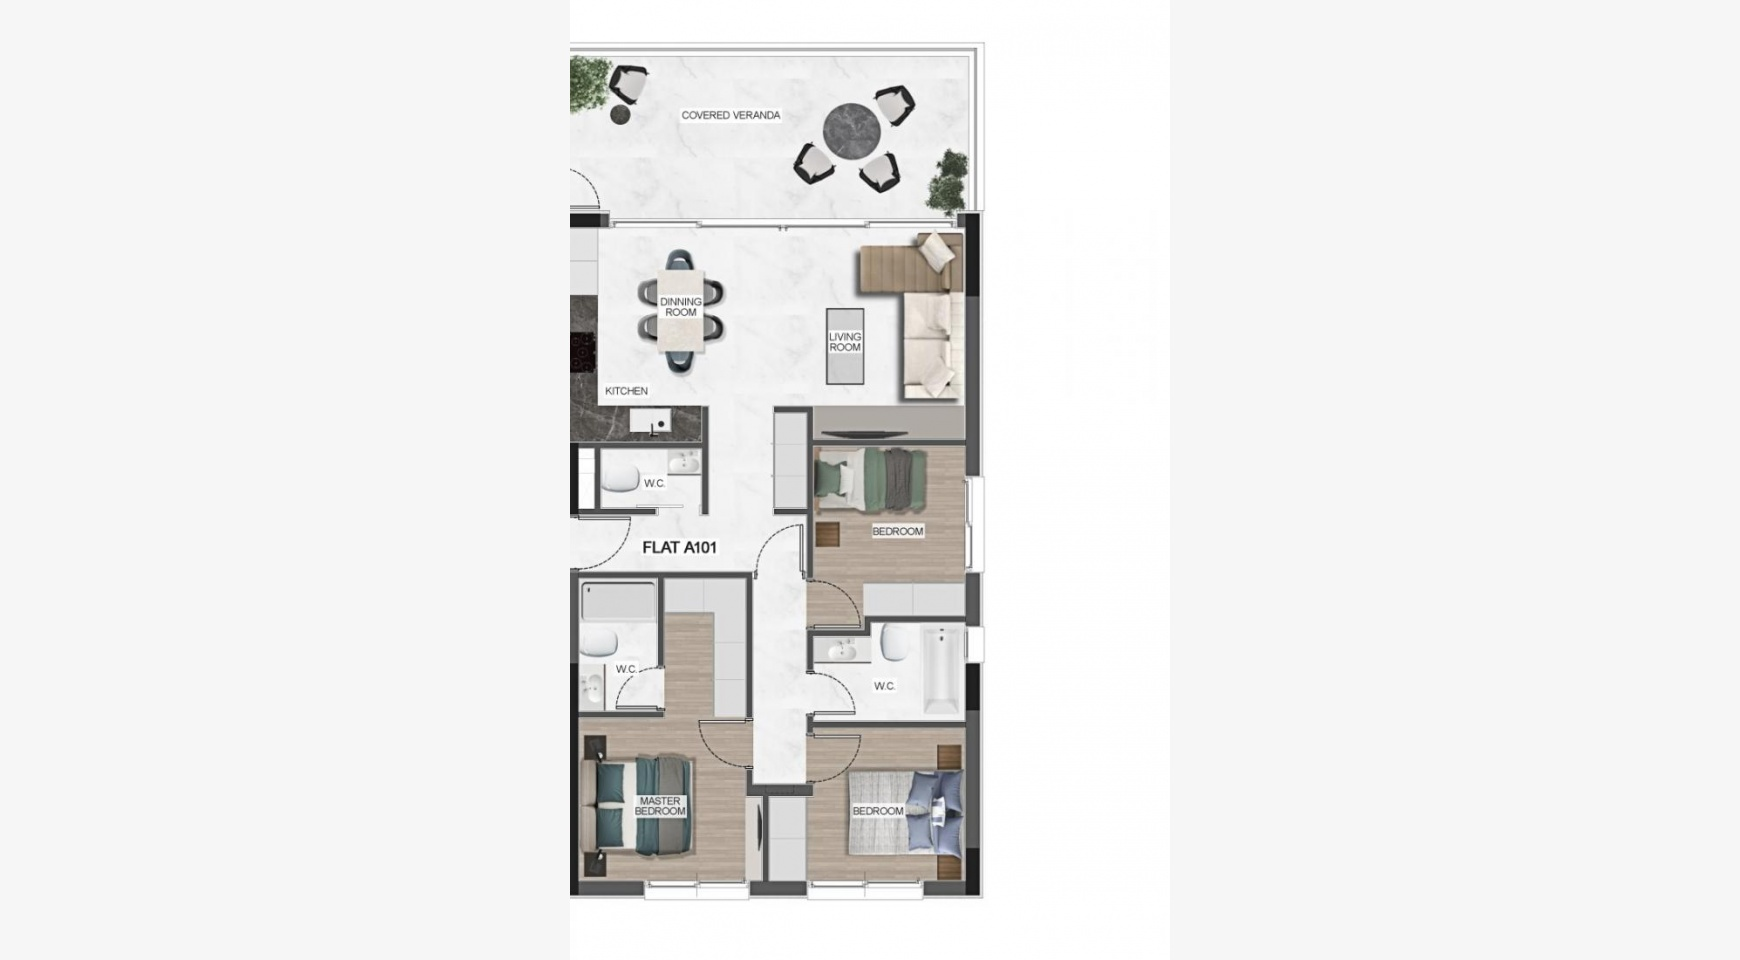 Urban City Residences, Block A. New Spacious 3 Bedroom Apartment 201 in the City Centre - 42